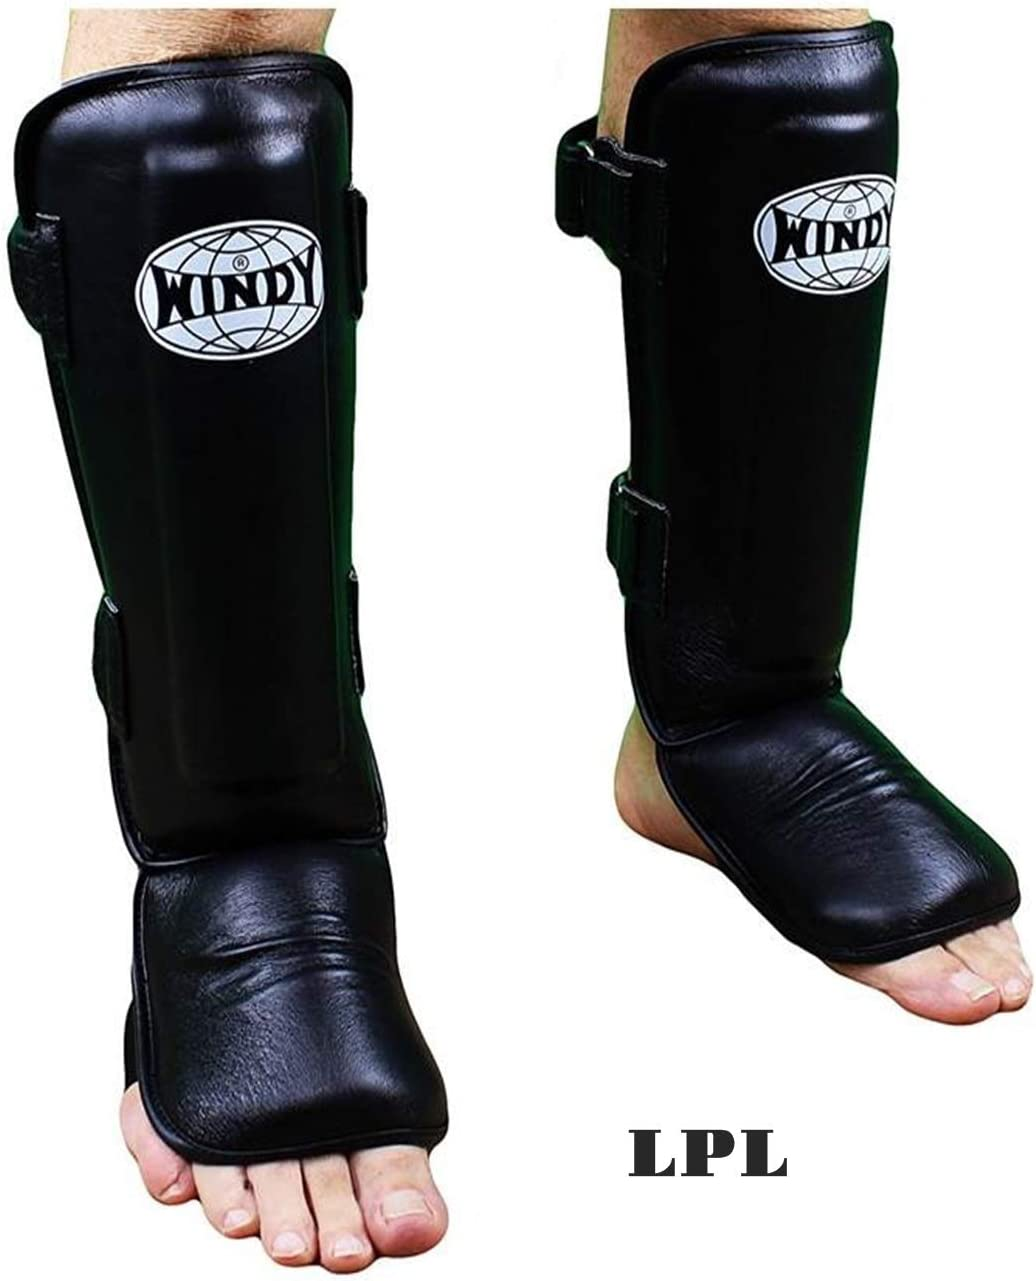 WINDY SHIN GUARDS PRO STYLE BLACK M,L,XL GENUINE LEATHER TRAINING  MMA K1